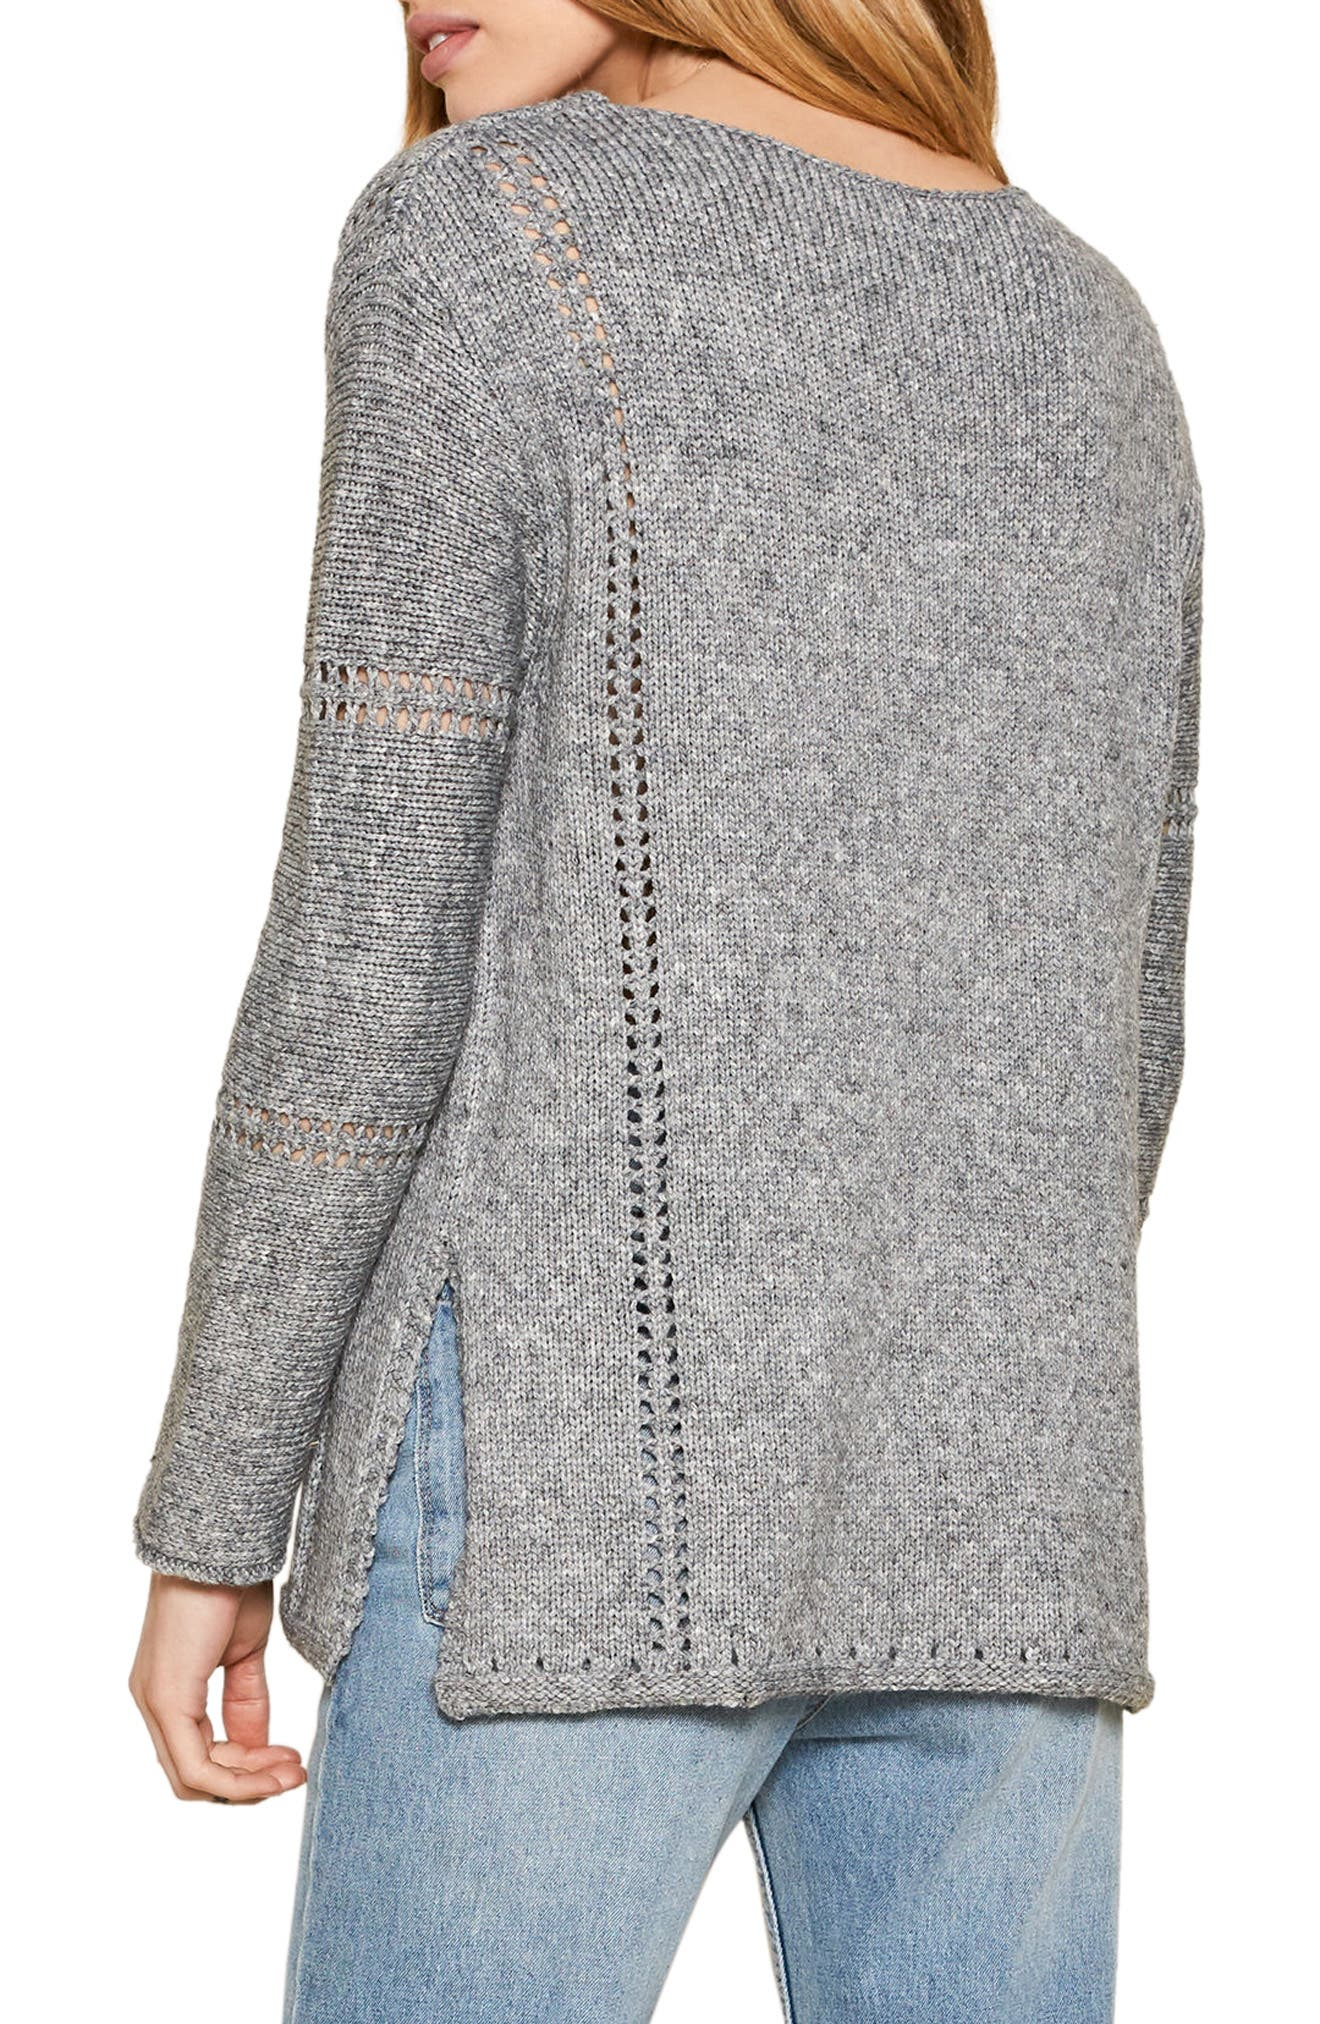 Rickerson Sweater,                             Alternate thumbnail 3, color,                             Heather Grey